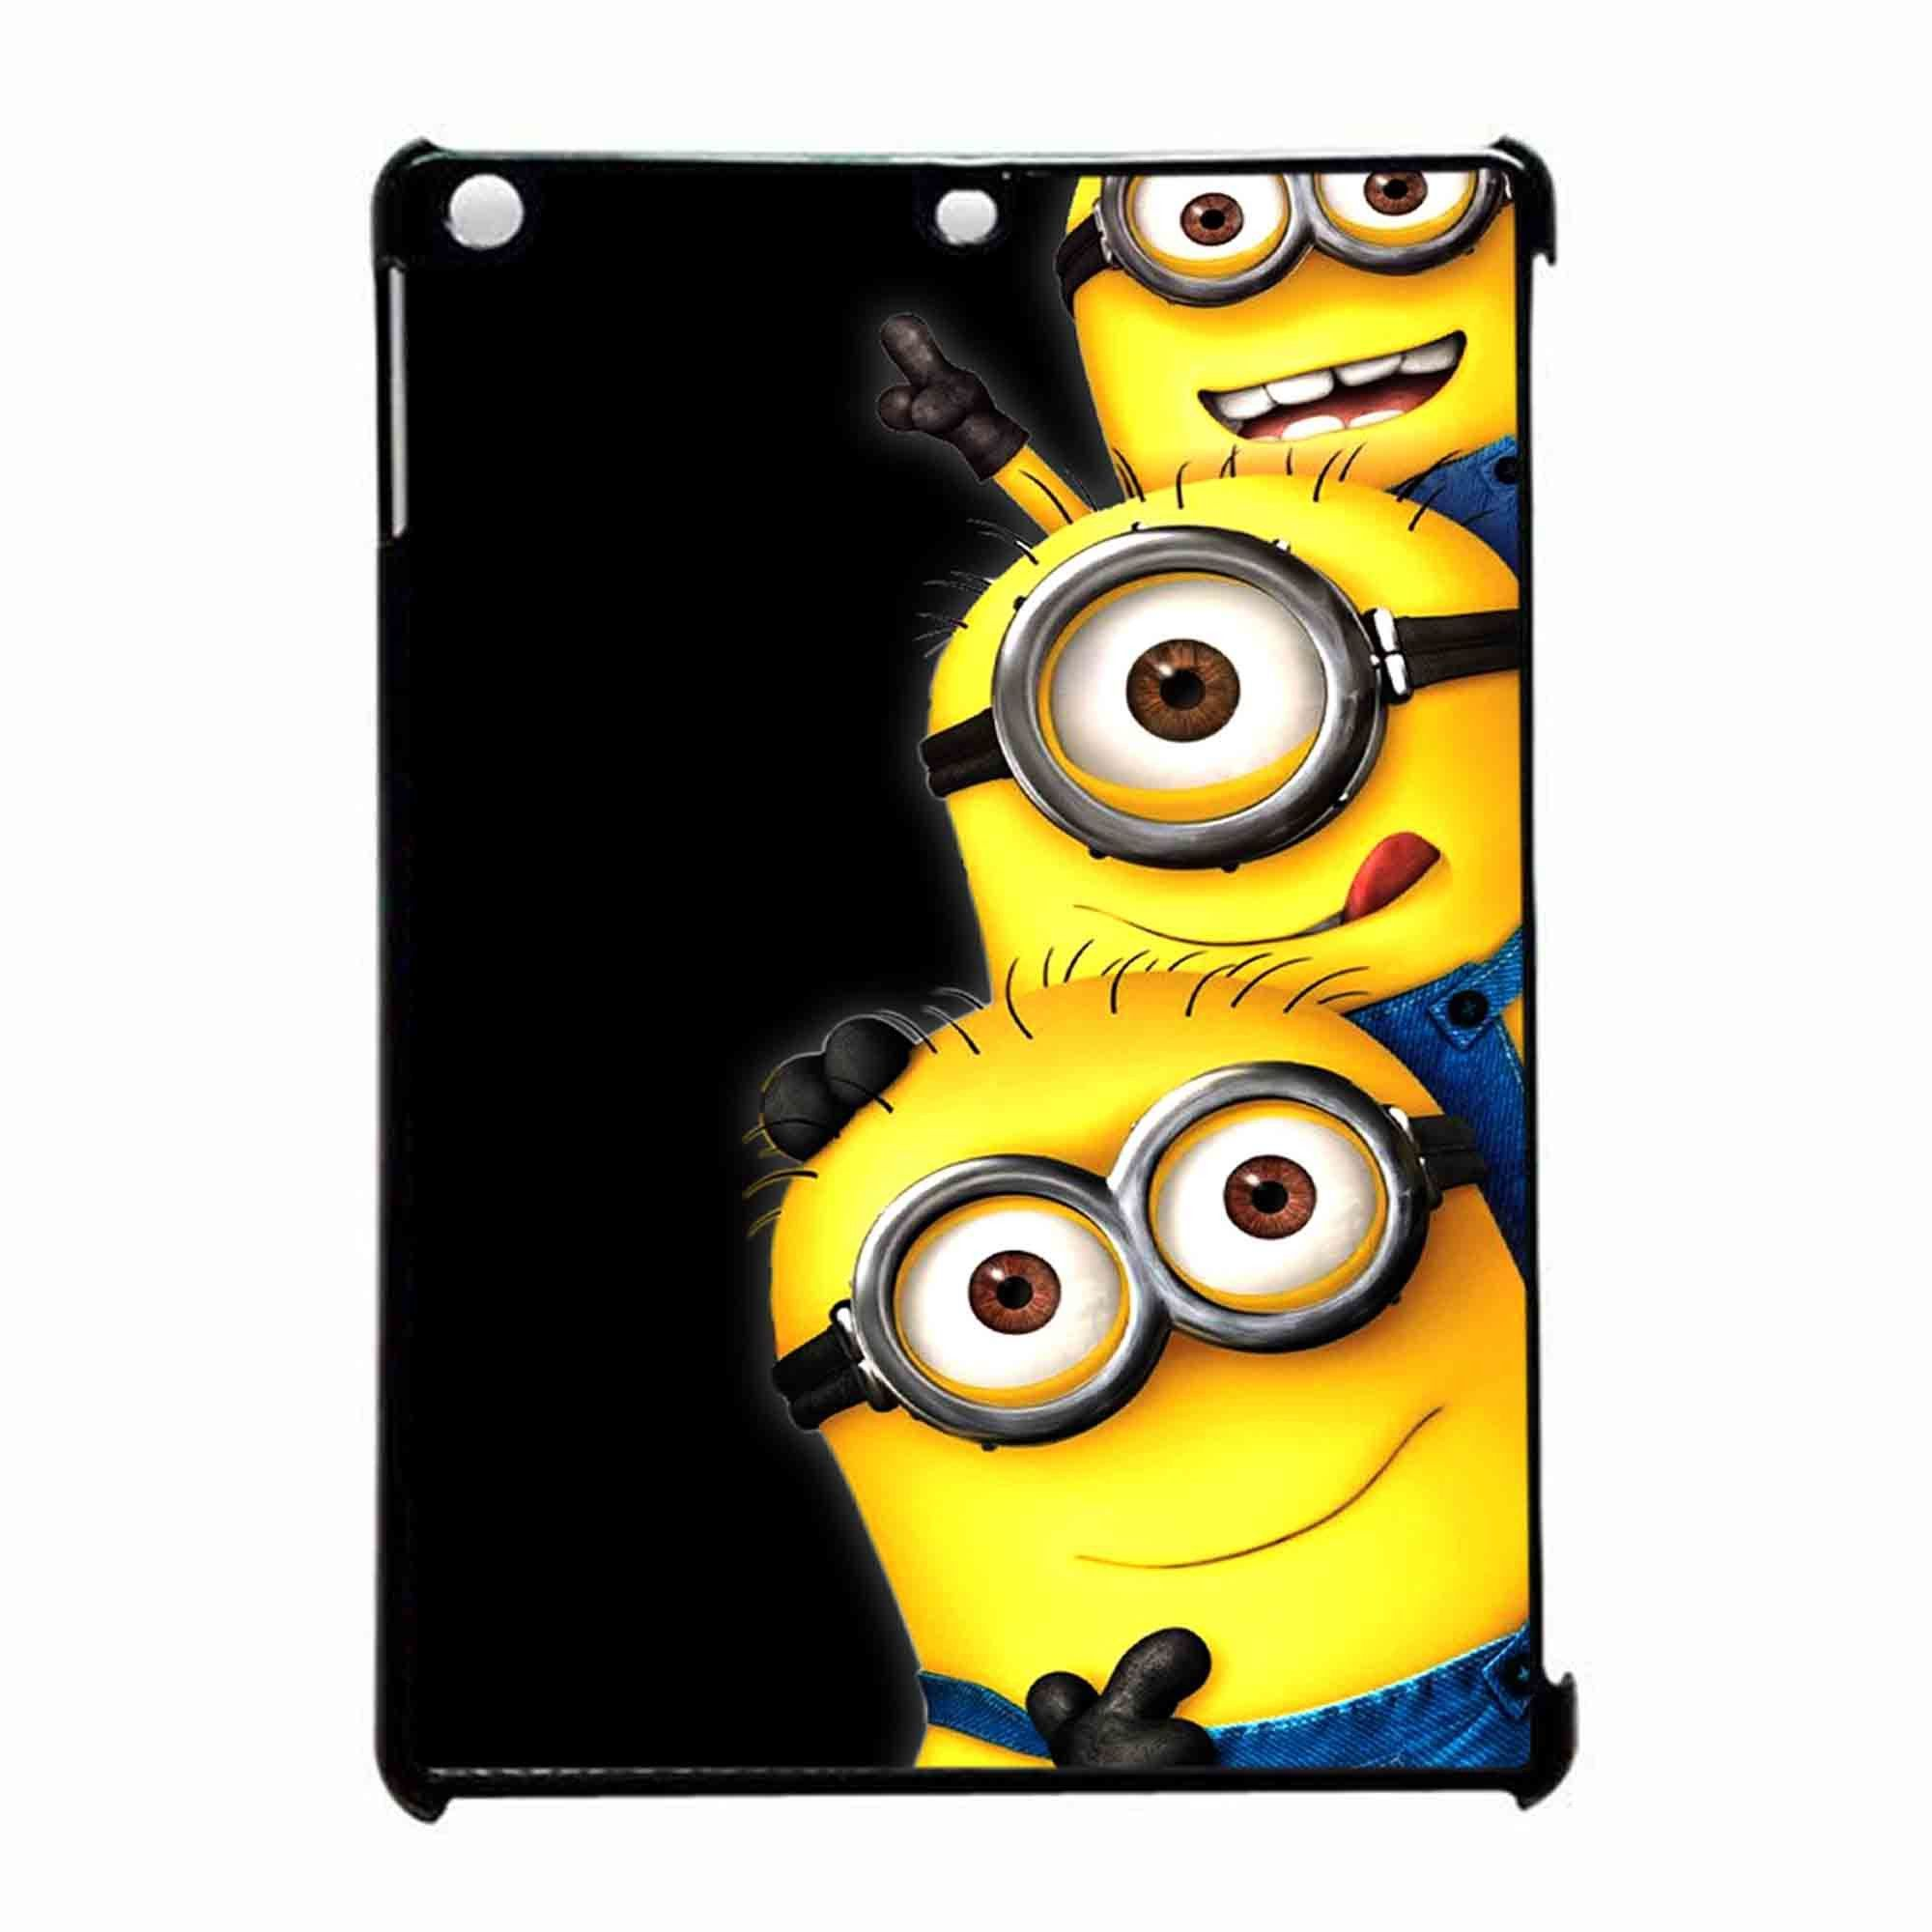 Great Despicable Me Minions Animation iPad Air Case